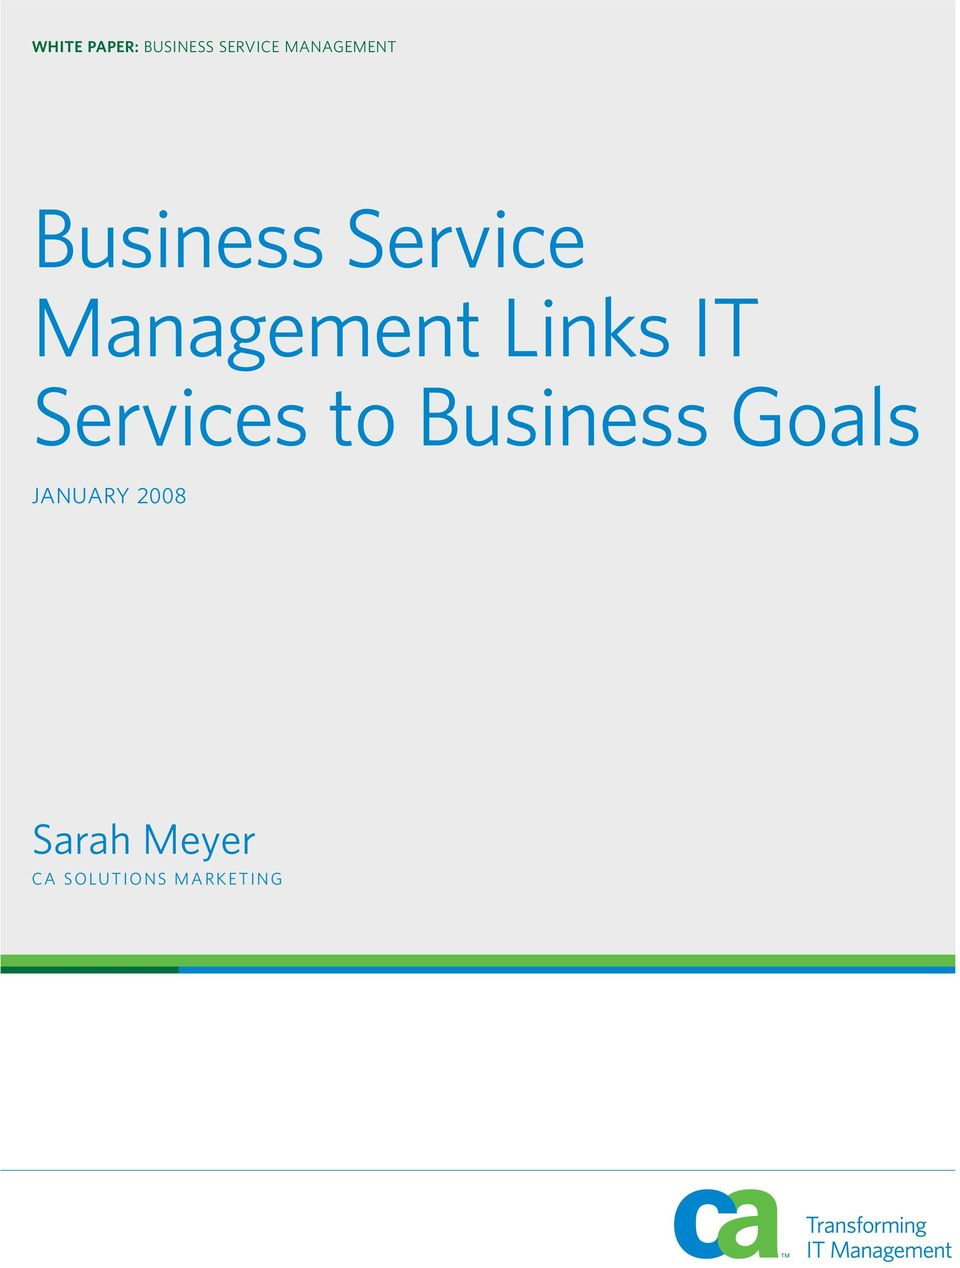 Management Links IT Services to